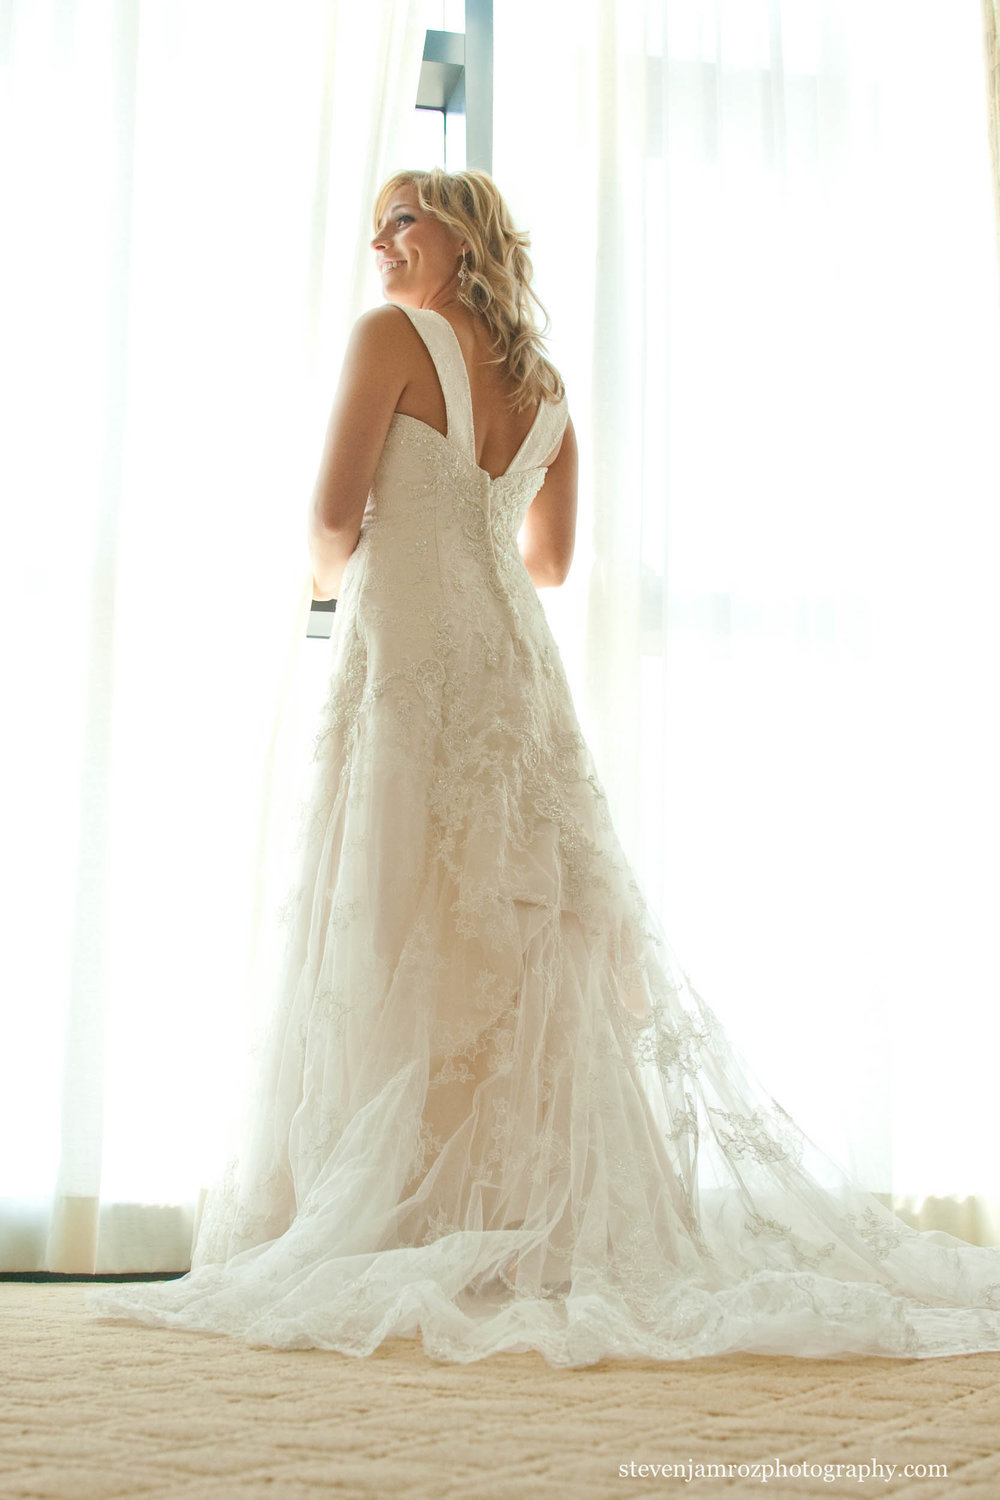 window-long-wedding-dress-steven-jamroz-photography-0222.jpg